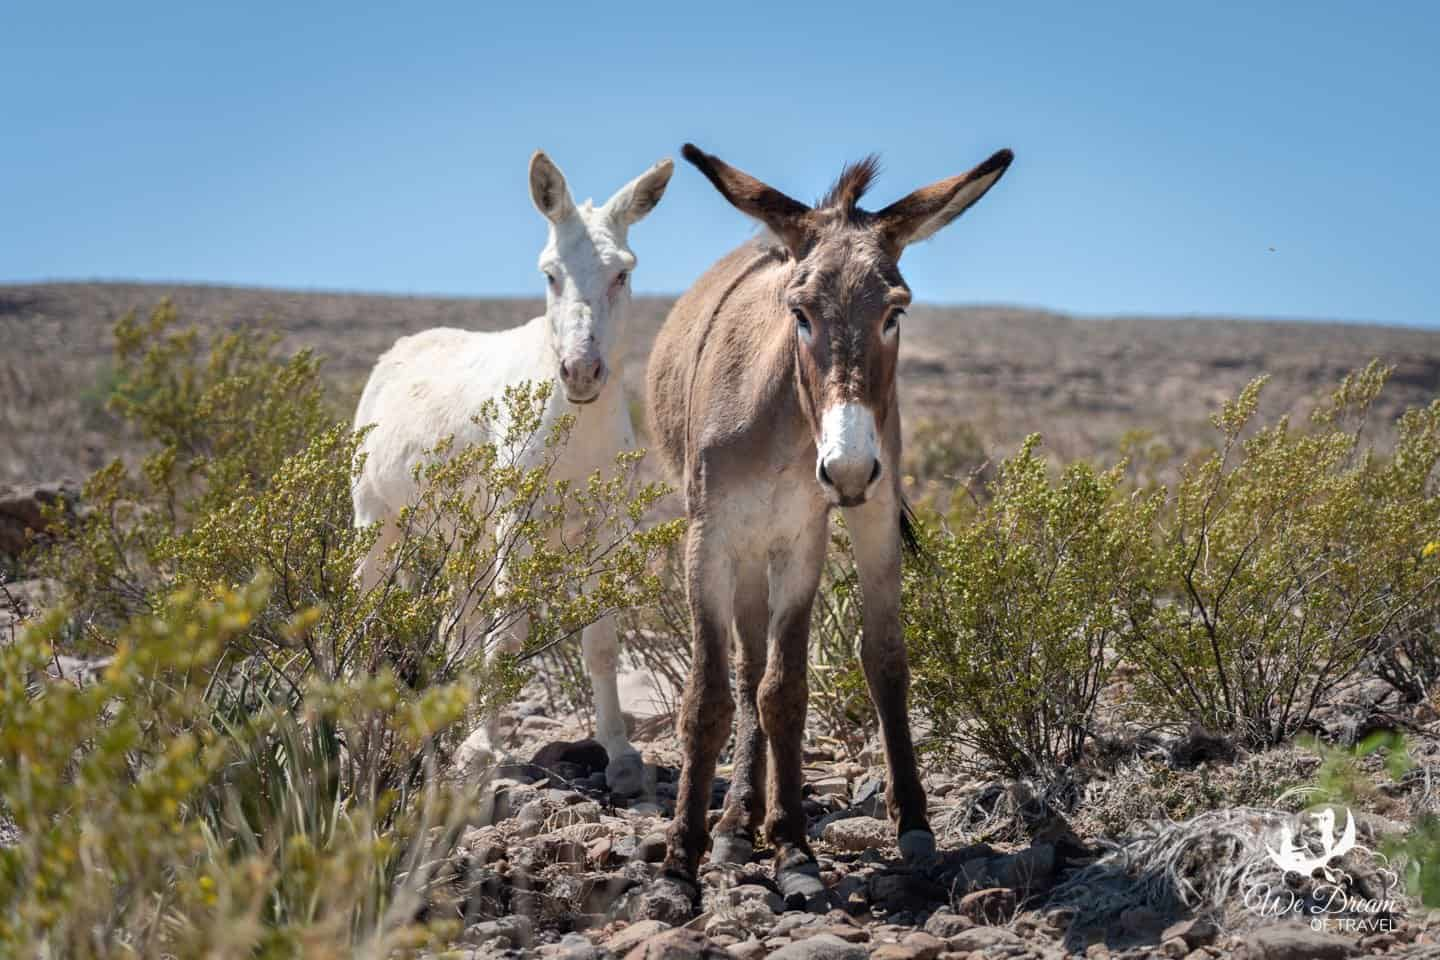 Desert mules pose for a photo.